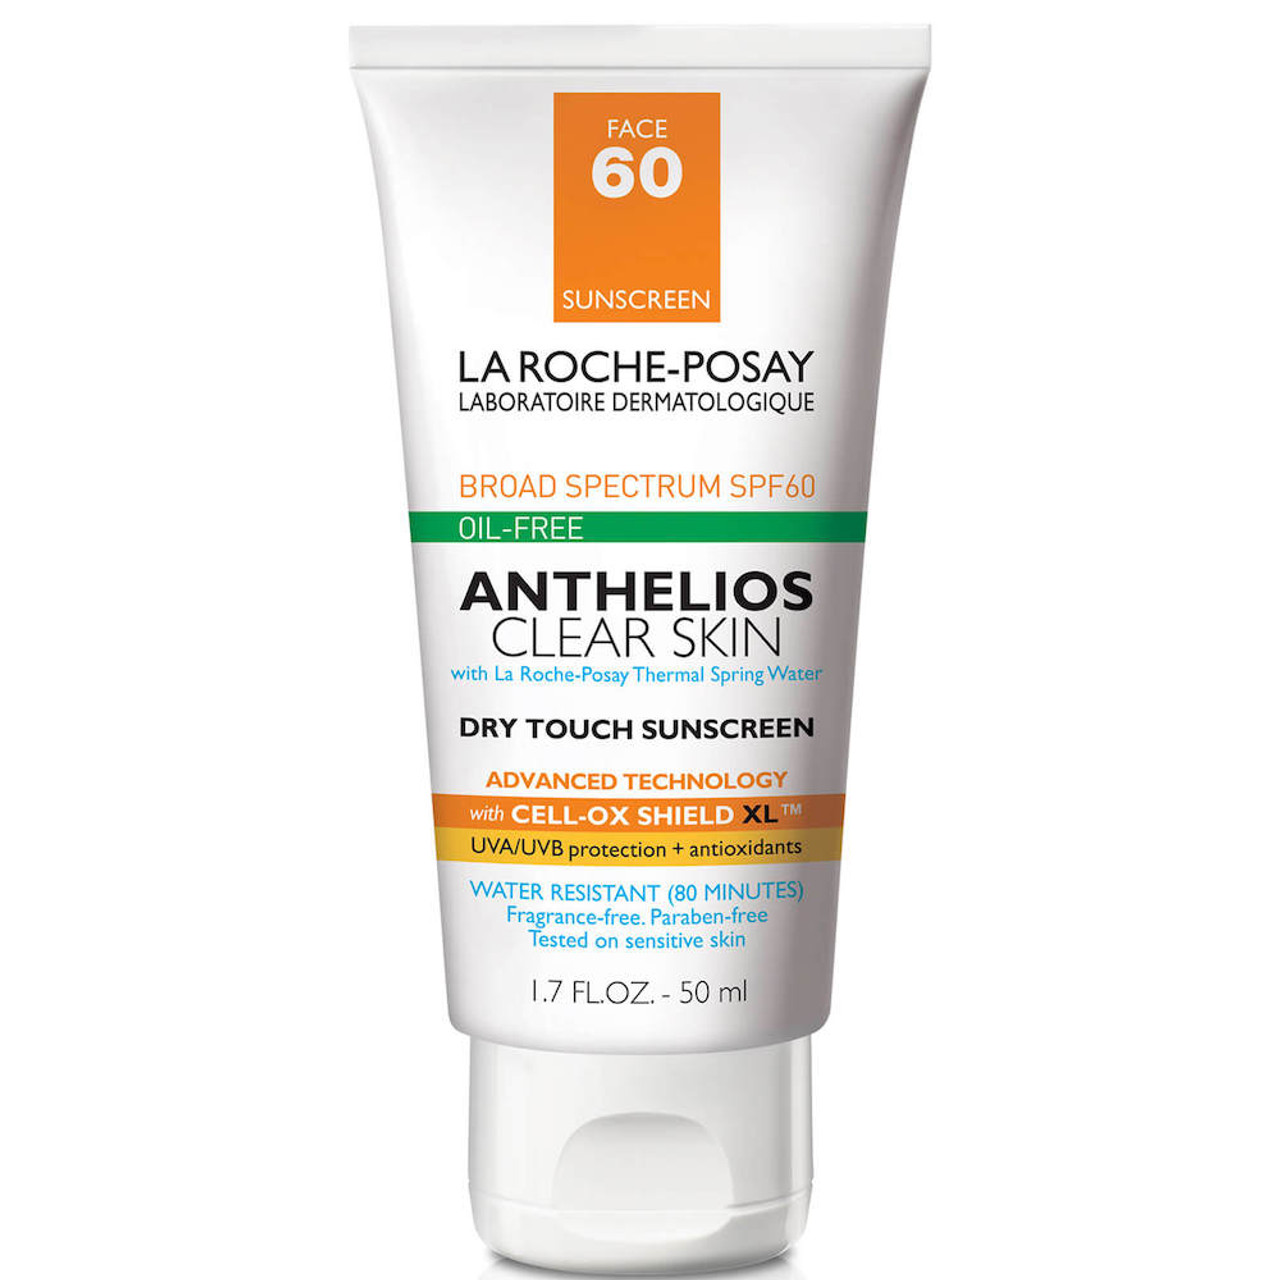 La Roche Posay Anthelios Clear Skin Dry Touch Sunscreen SPF 60 BeautifiedYou.com